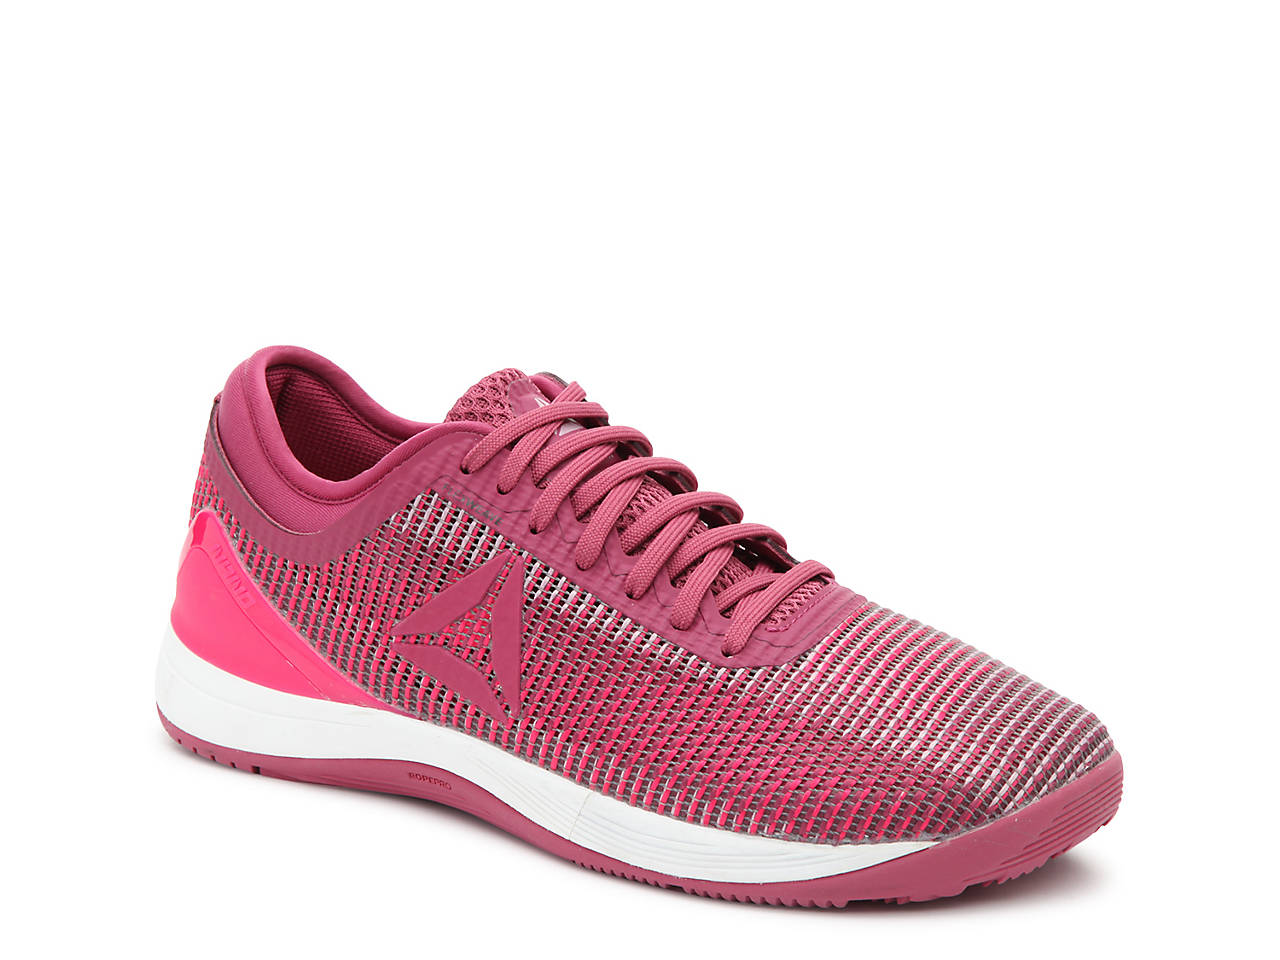 ccdfdf63044a Reebok CrossFit Nano 8 Training Shoe - Women s Women s Shoes